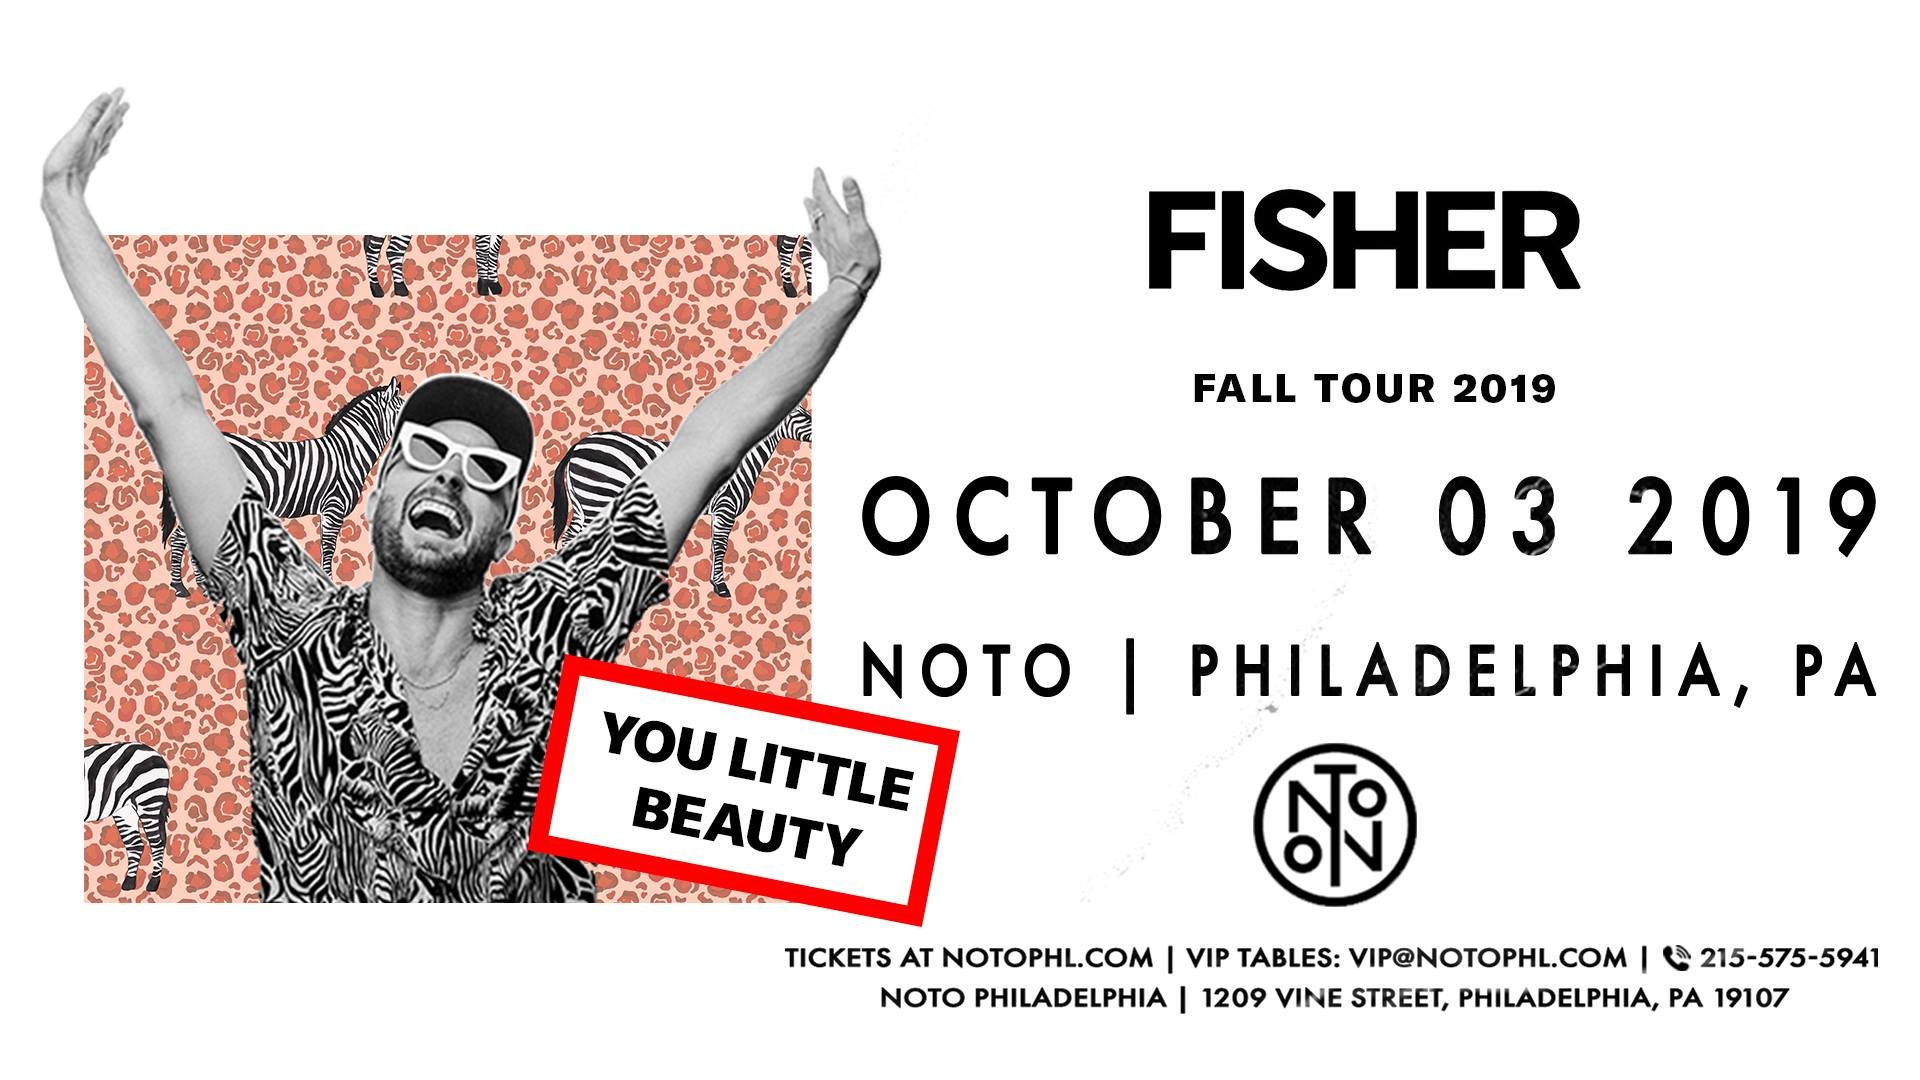 Fisher: You Little Beauty Tour at NOTO